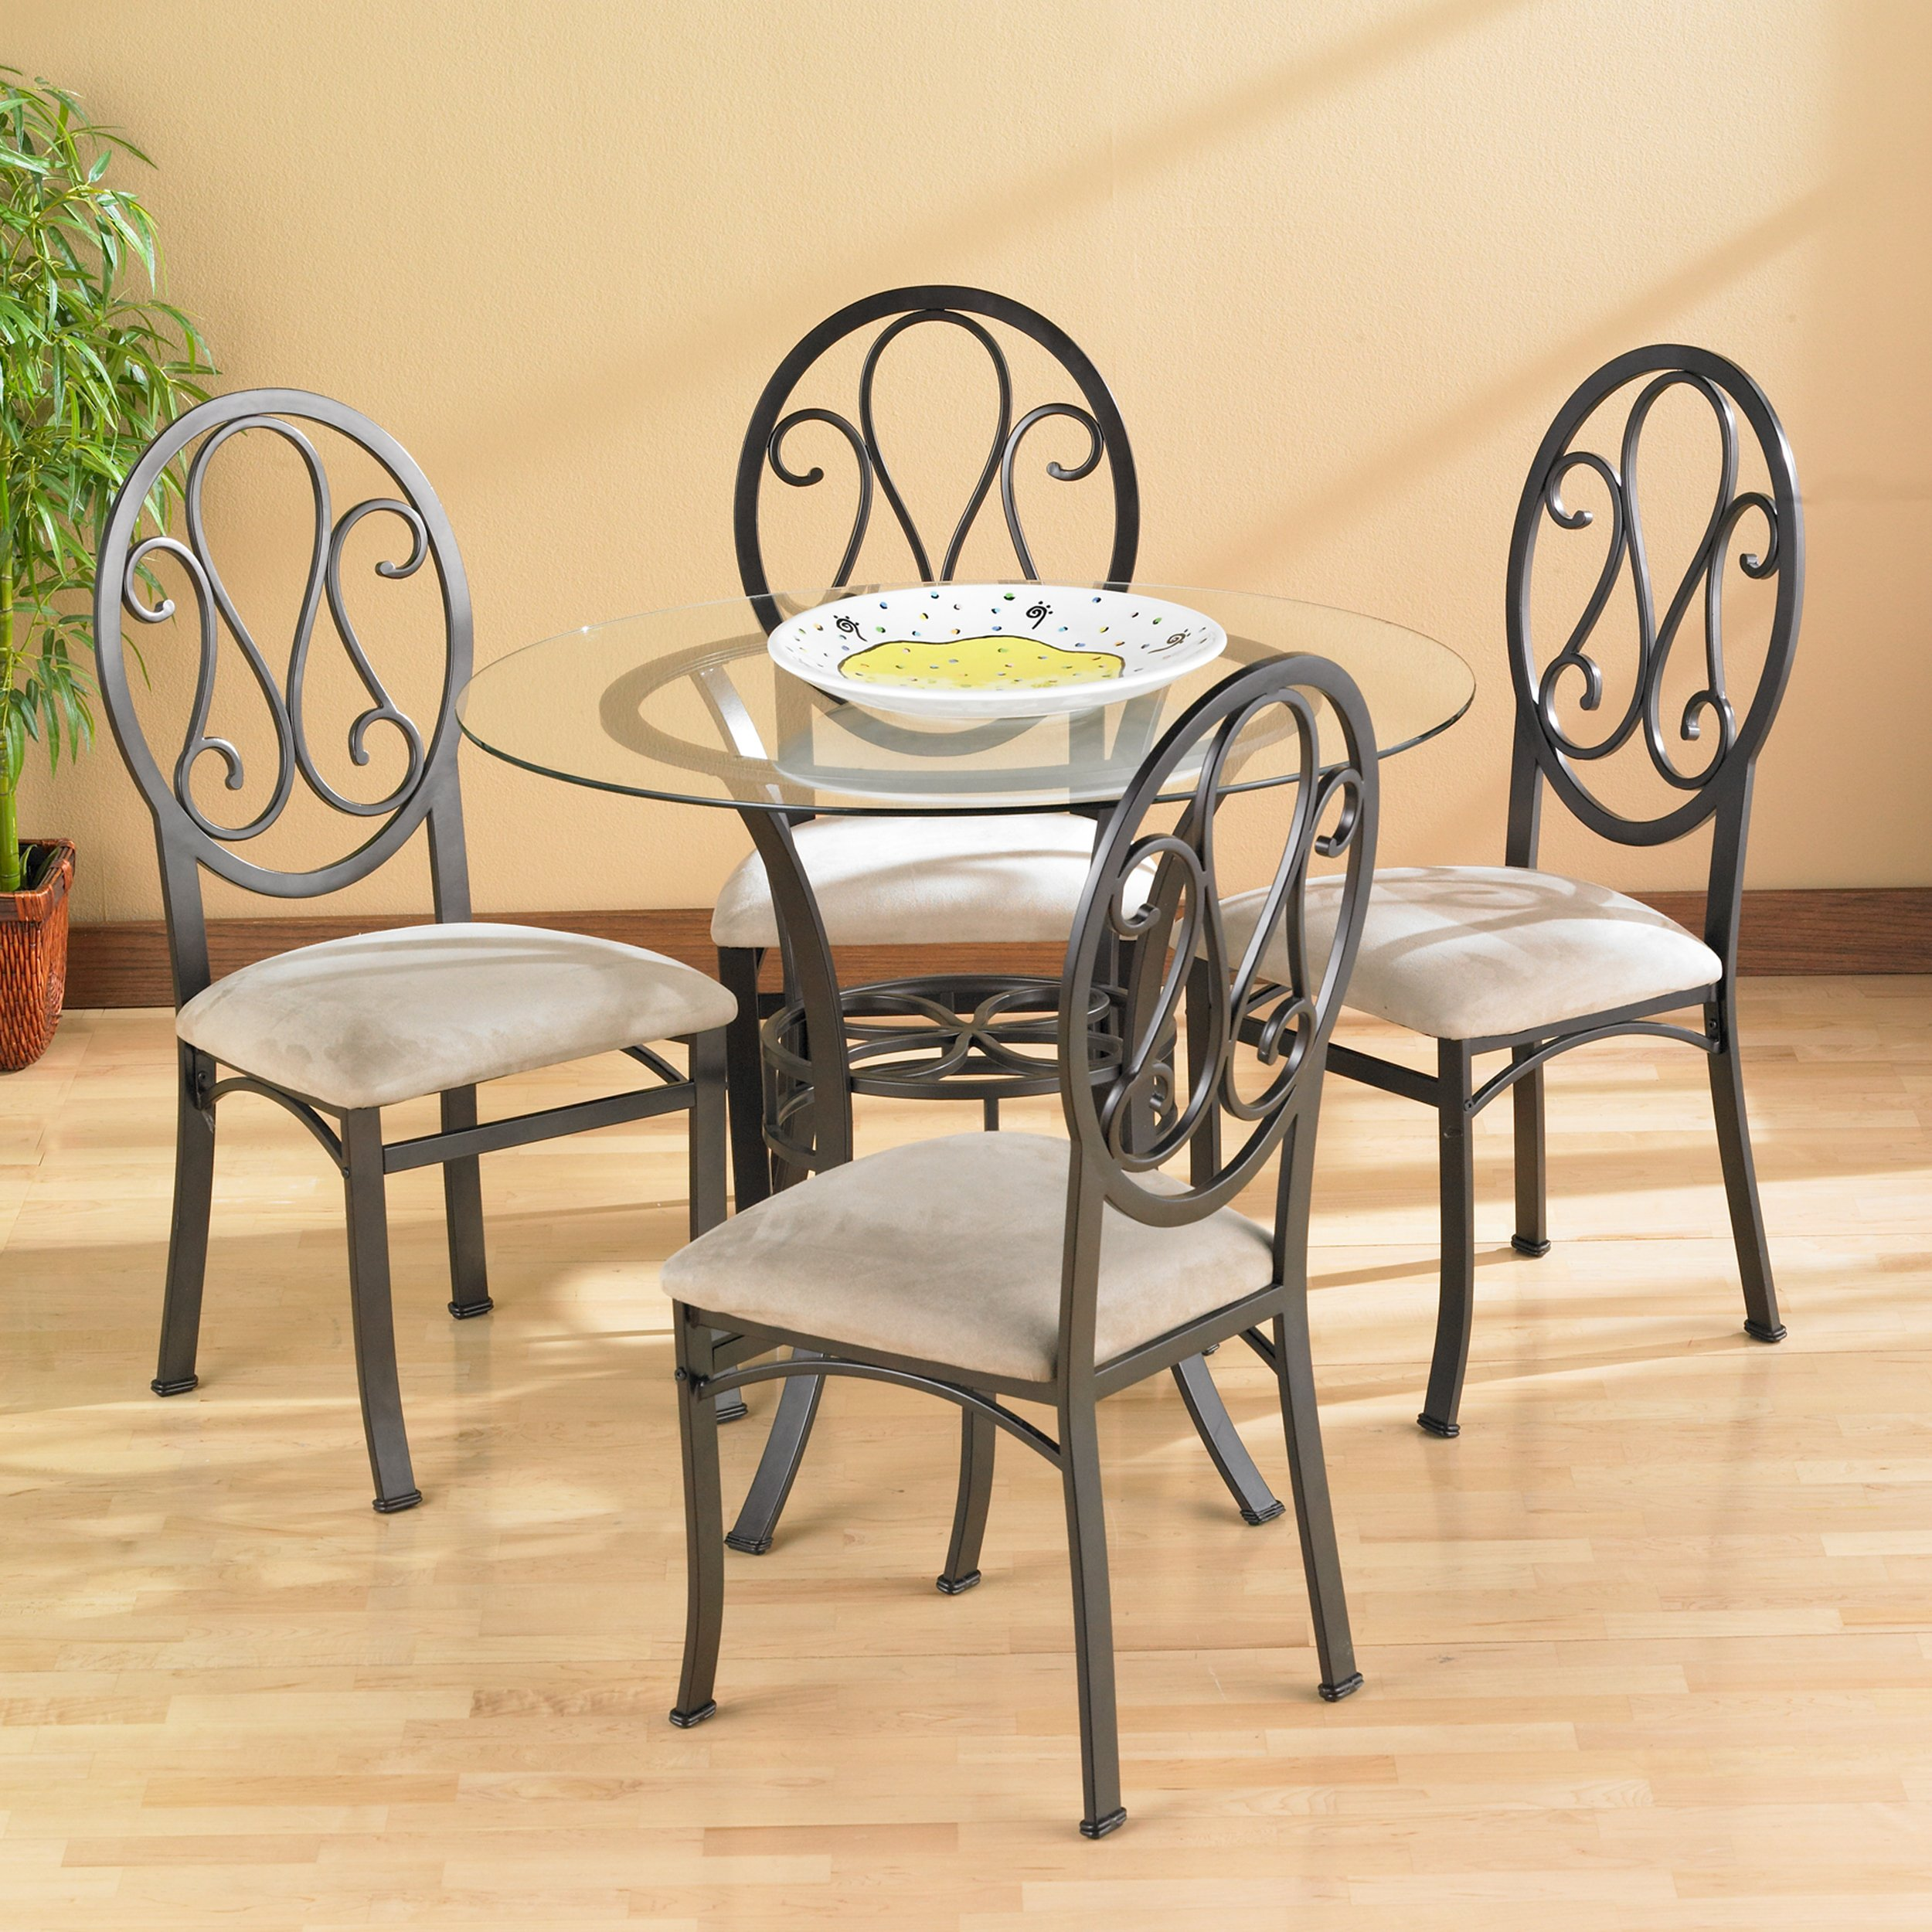 Southern Enterprises Lucianna Glass Top Dining Table, Dark Brown Finish by Southern Enterprises (Image #4)